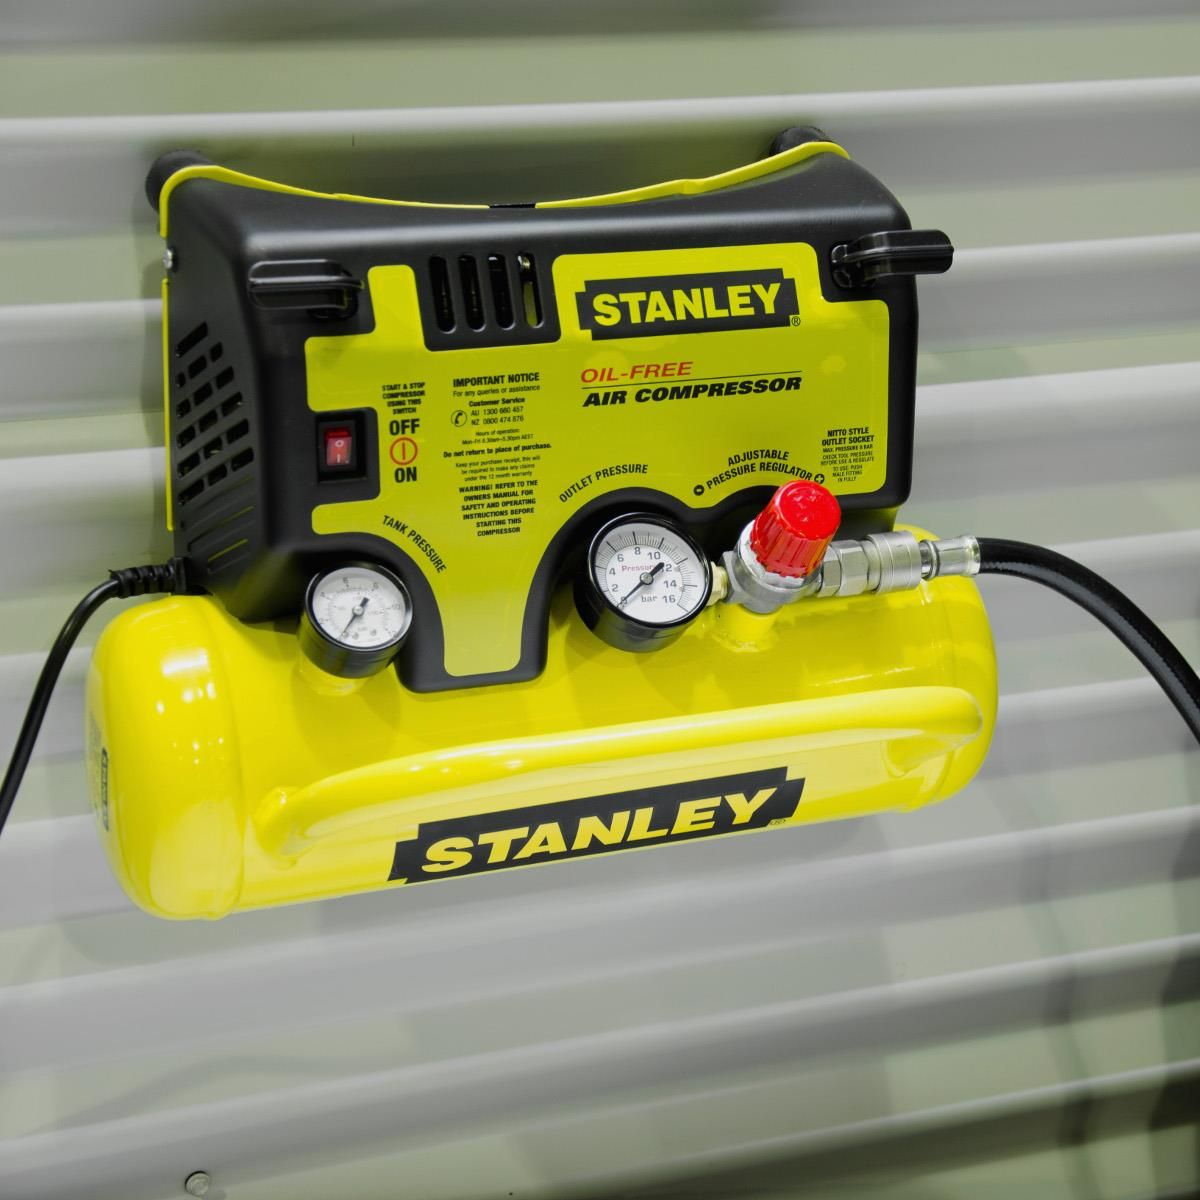 Stanley Wall Mount Air Compressor 0.5HP 14LPM